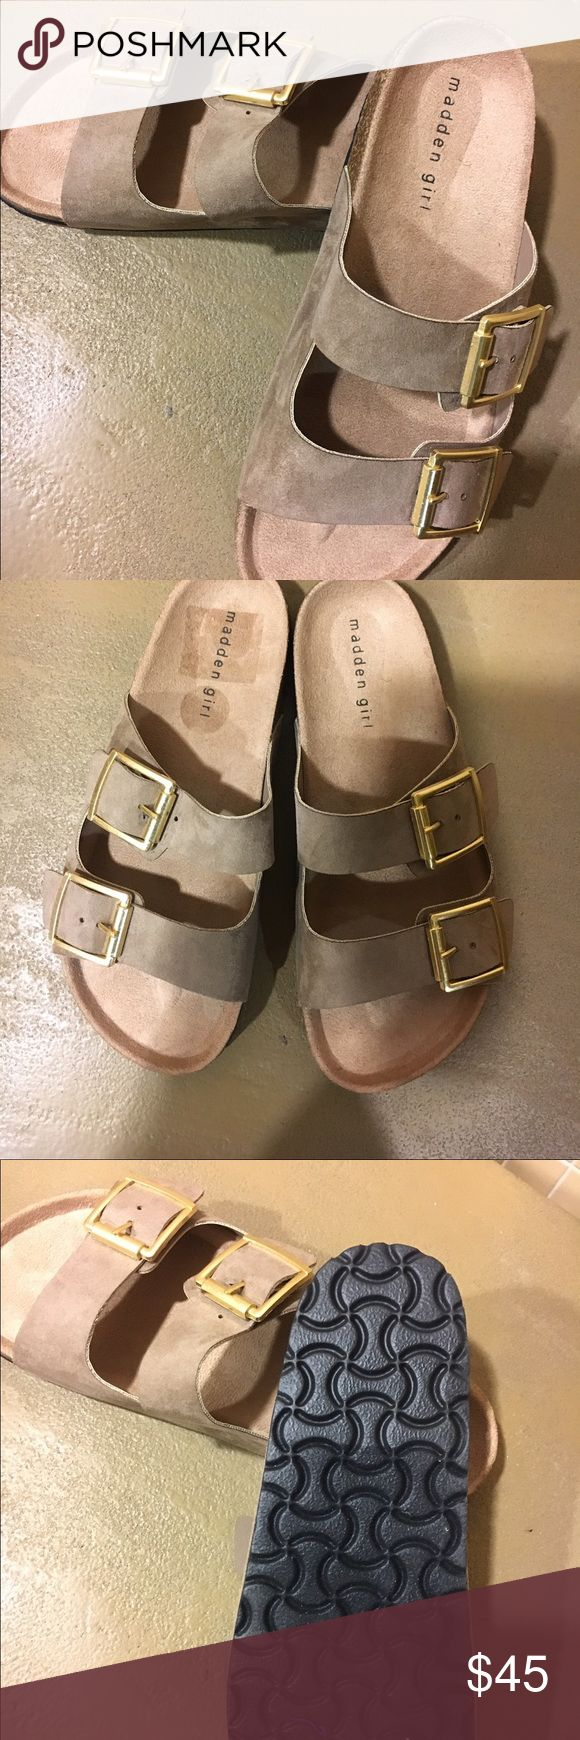 Summer READY Madden Girl Sandal Super cute and comfy! New without box! This sandal can be worn with anything!!! TTS! color is dark taupe.  Strap is suede material Madden Girl Shoes Sandals